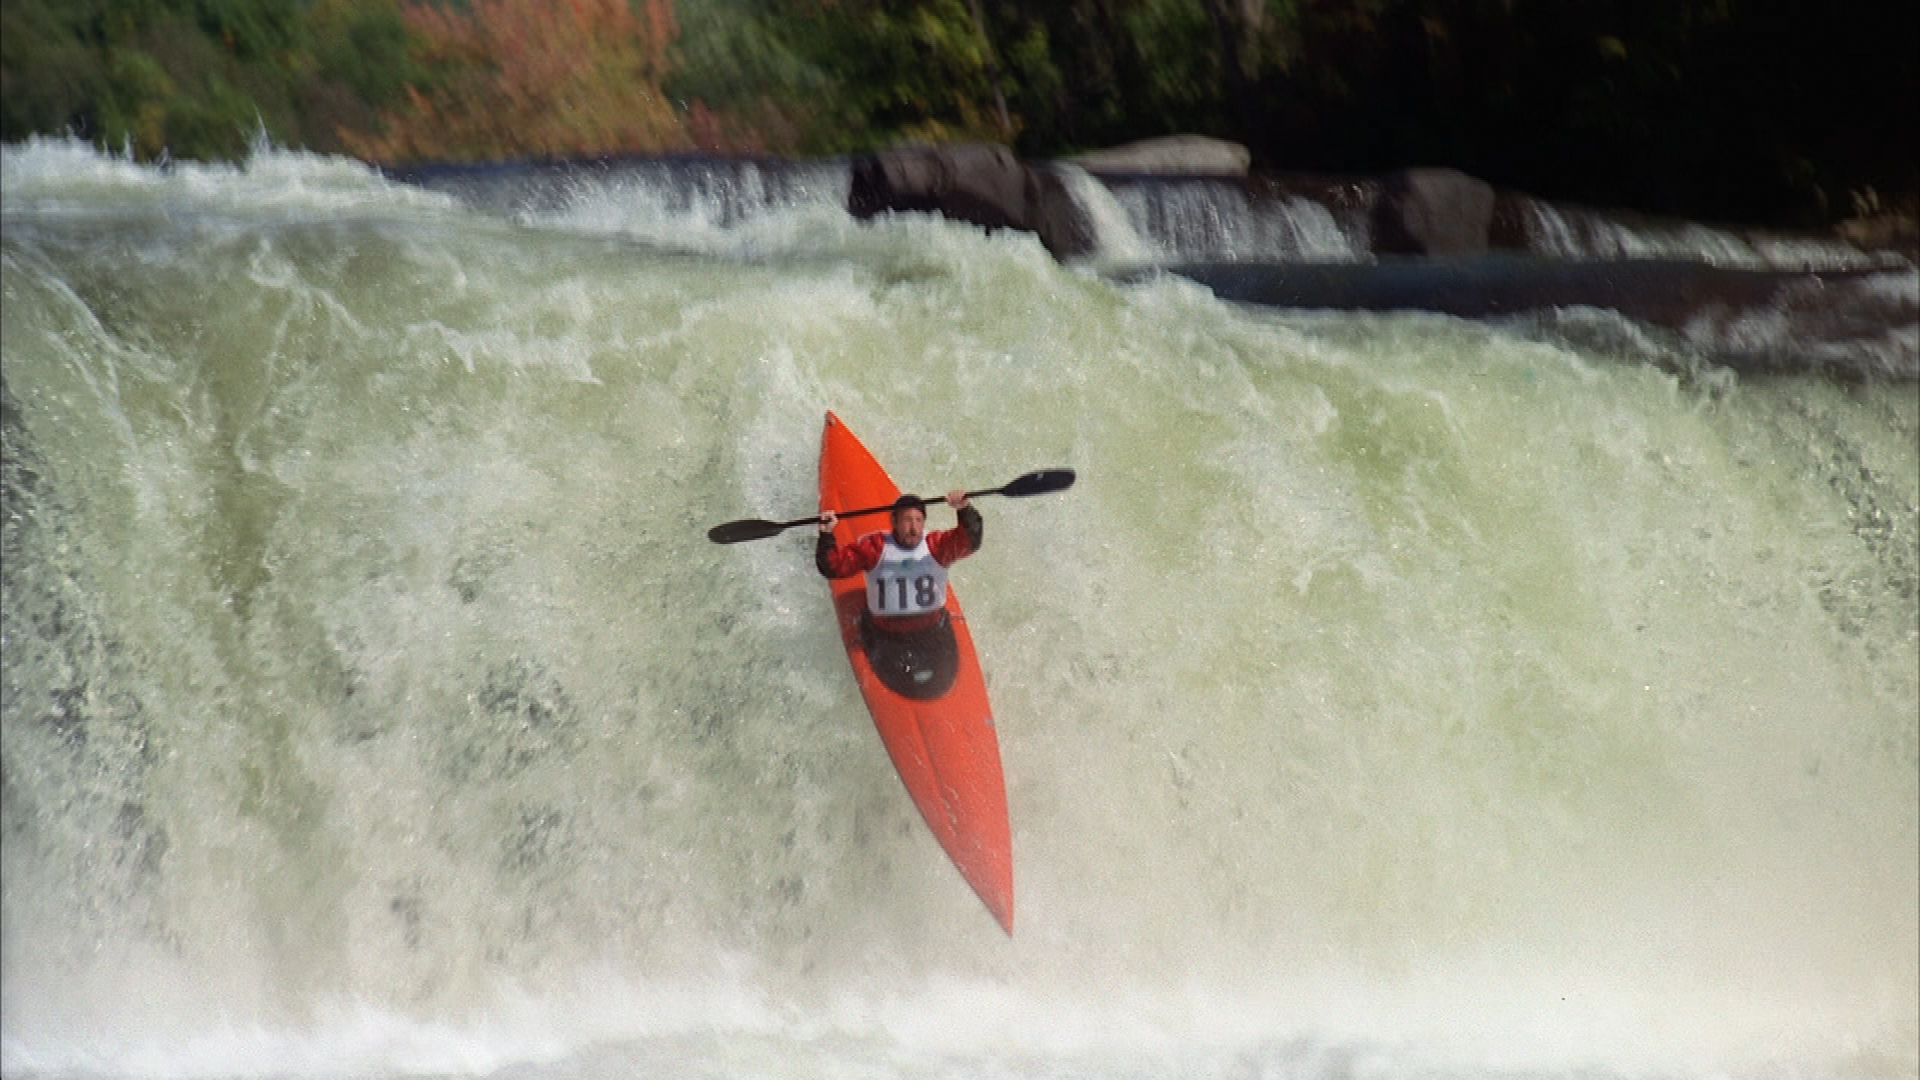 kayaker over the waterfall for pittsburgh's big picture